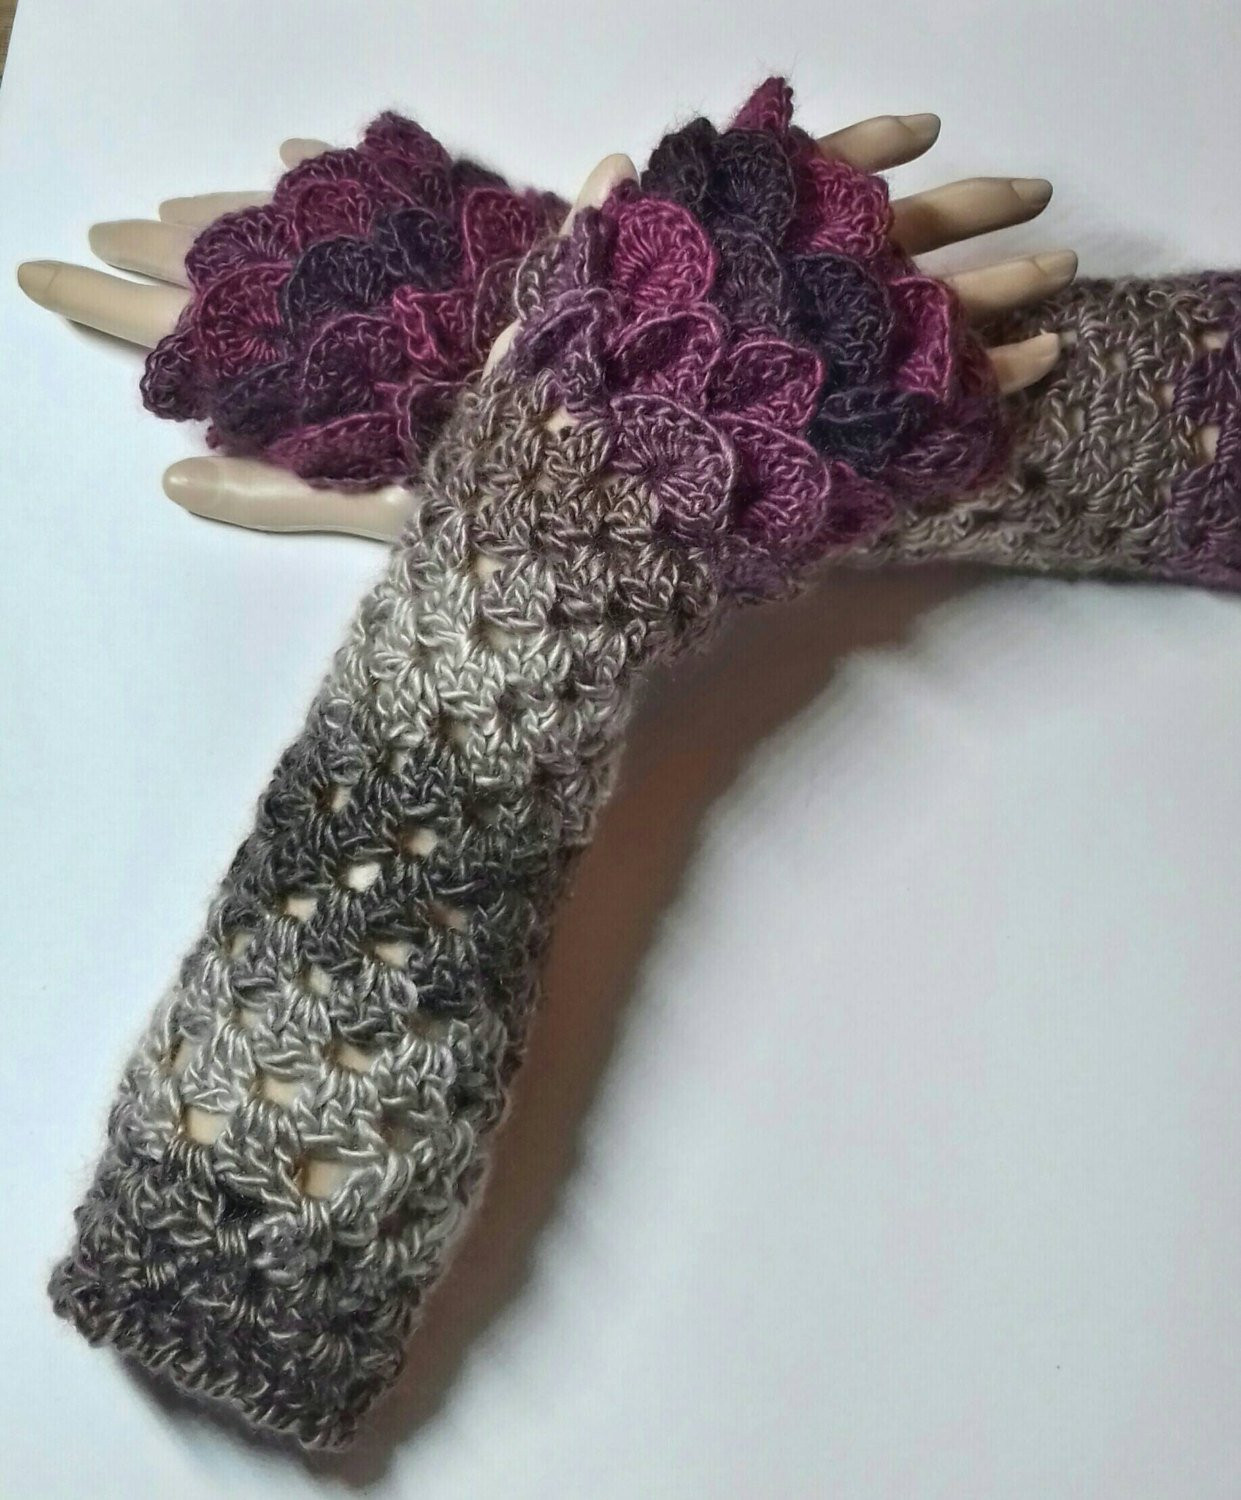 Dragon Scale Crochet Gloves Lovely Dragon Scale Ombre Glovesmermaid Cuffsdragon Gloves Of Dragon Scale Crochet Gloves New Dragon Gloves Dragon Scale Fingerless Gloves Long Crochet